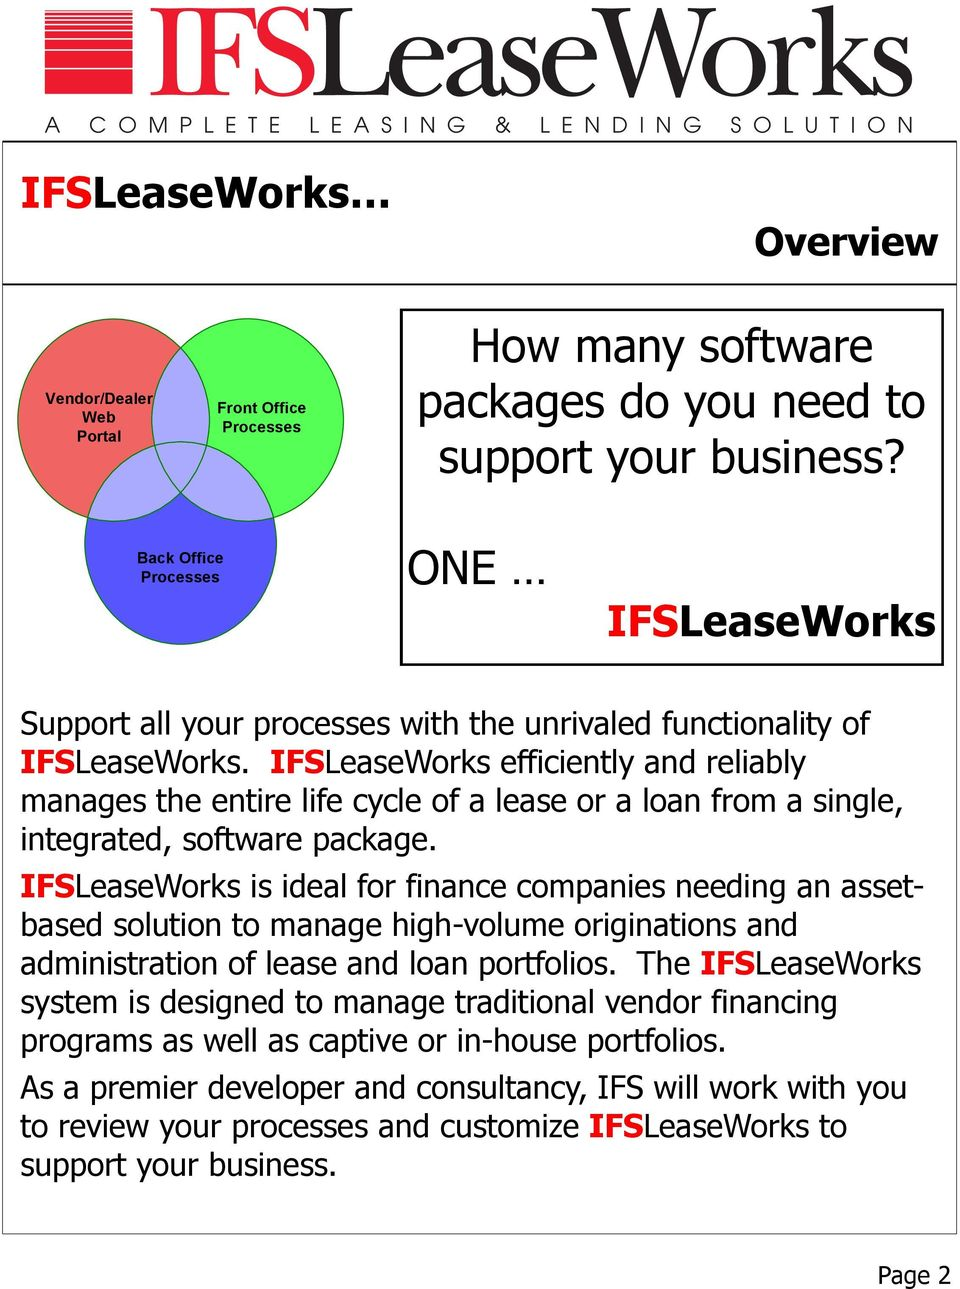 IFSLeaseWorks efficiently and reliably manages the entire life cycle of a lease or a loan from a single, integrated, software package.